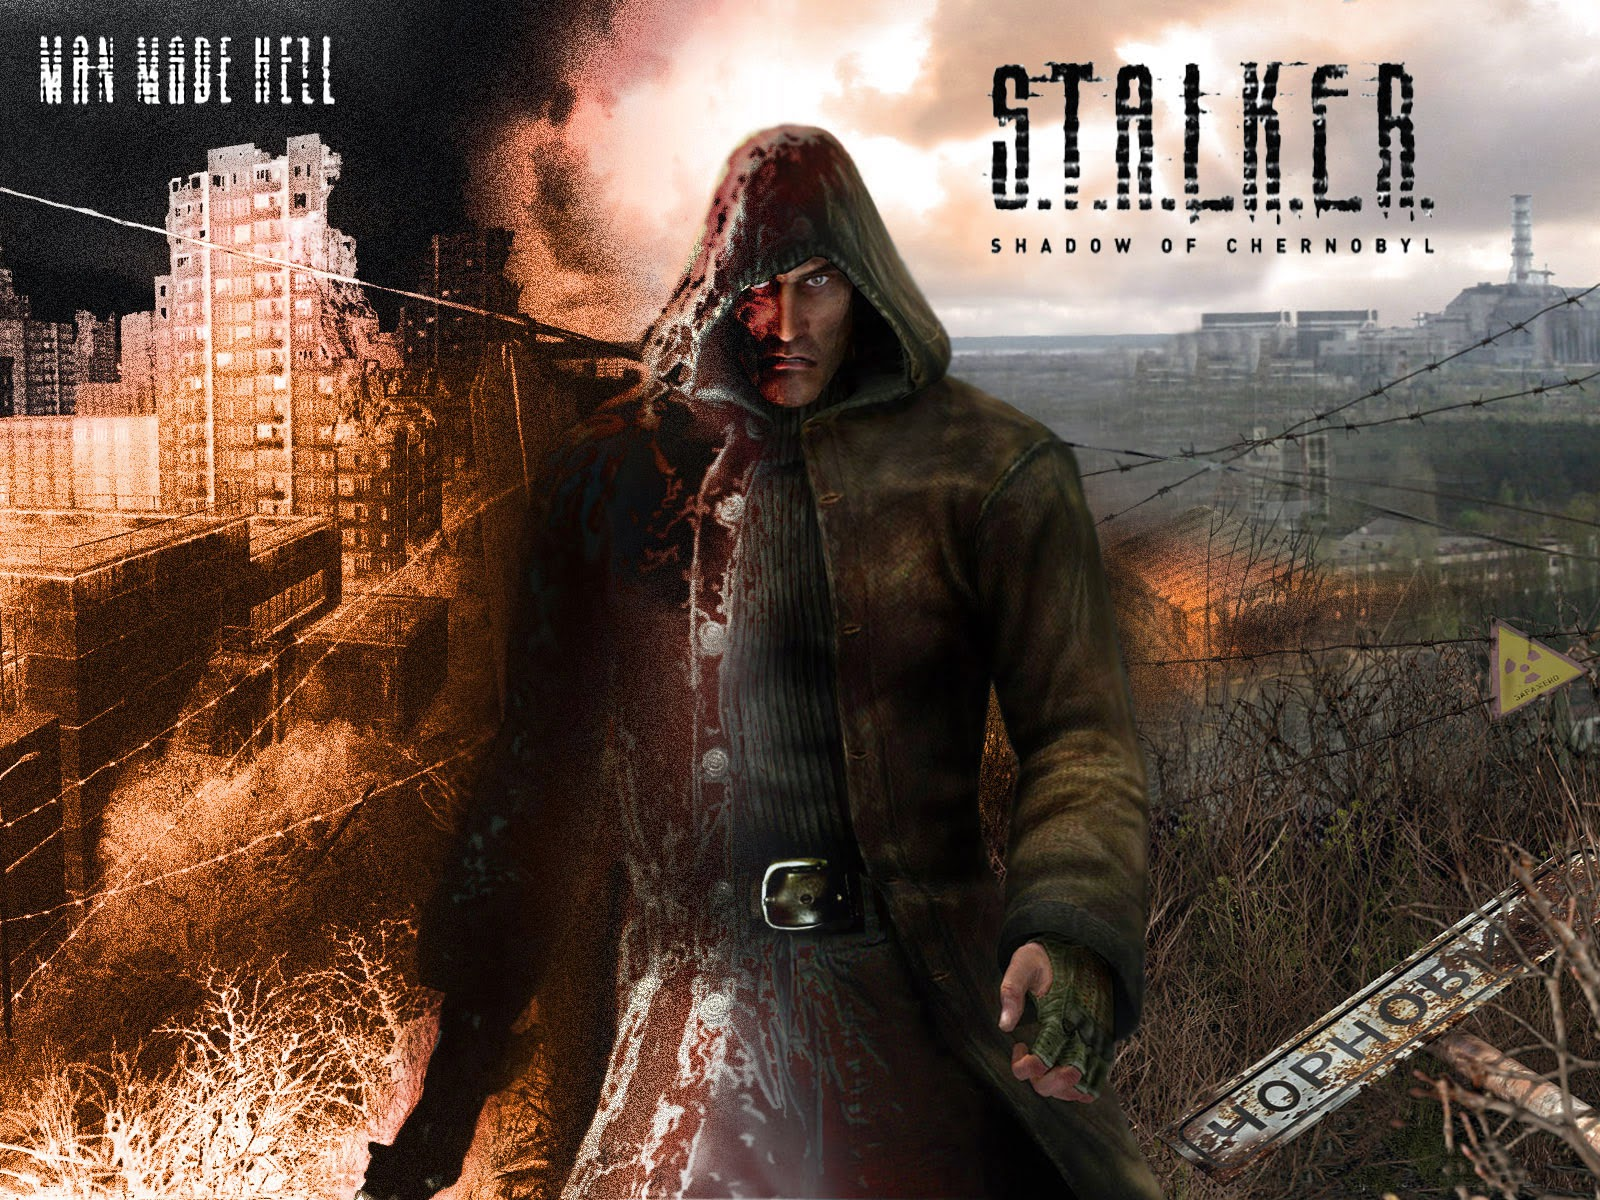 download stalker shadow of chernobyl, read reviews, watch clips and screenshots,wiki,mods,gameplay,complete 123gaming